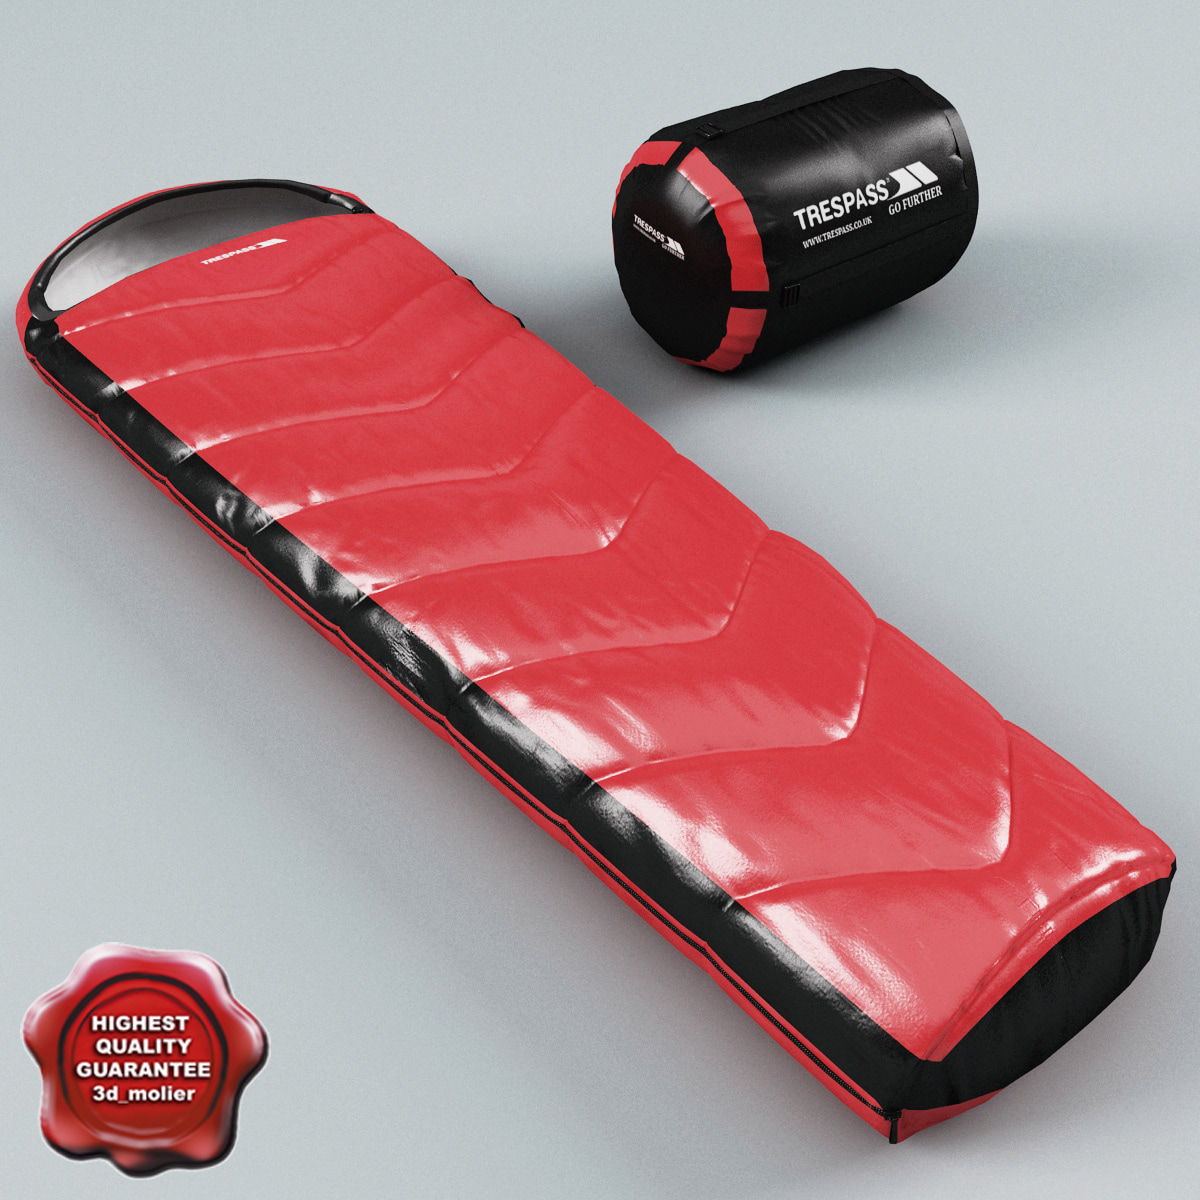 Sleeping_Bag_Trespass_Collection_00.jpg